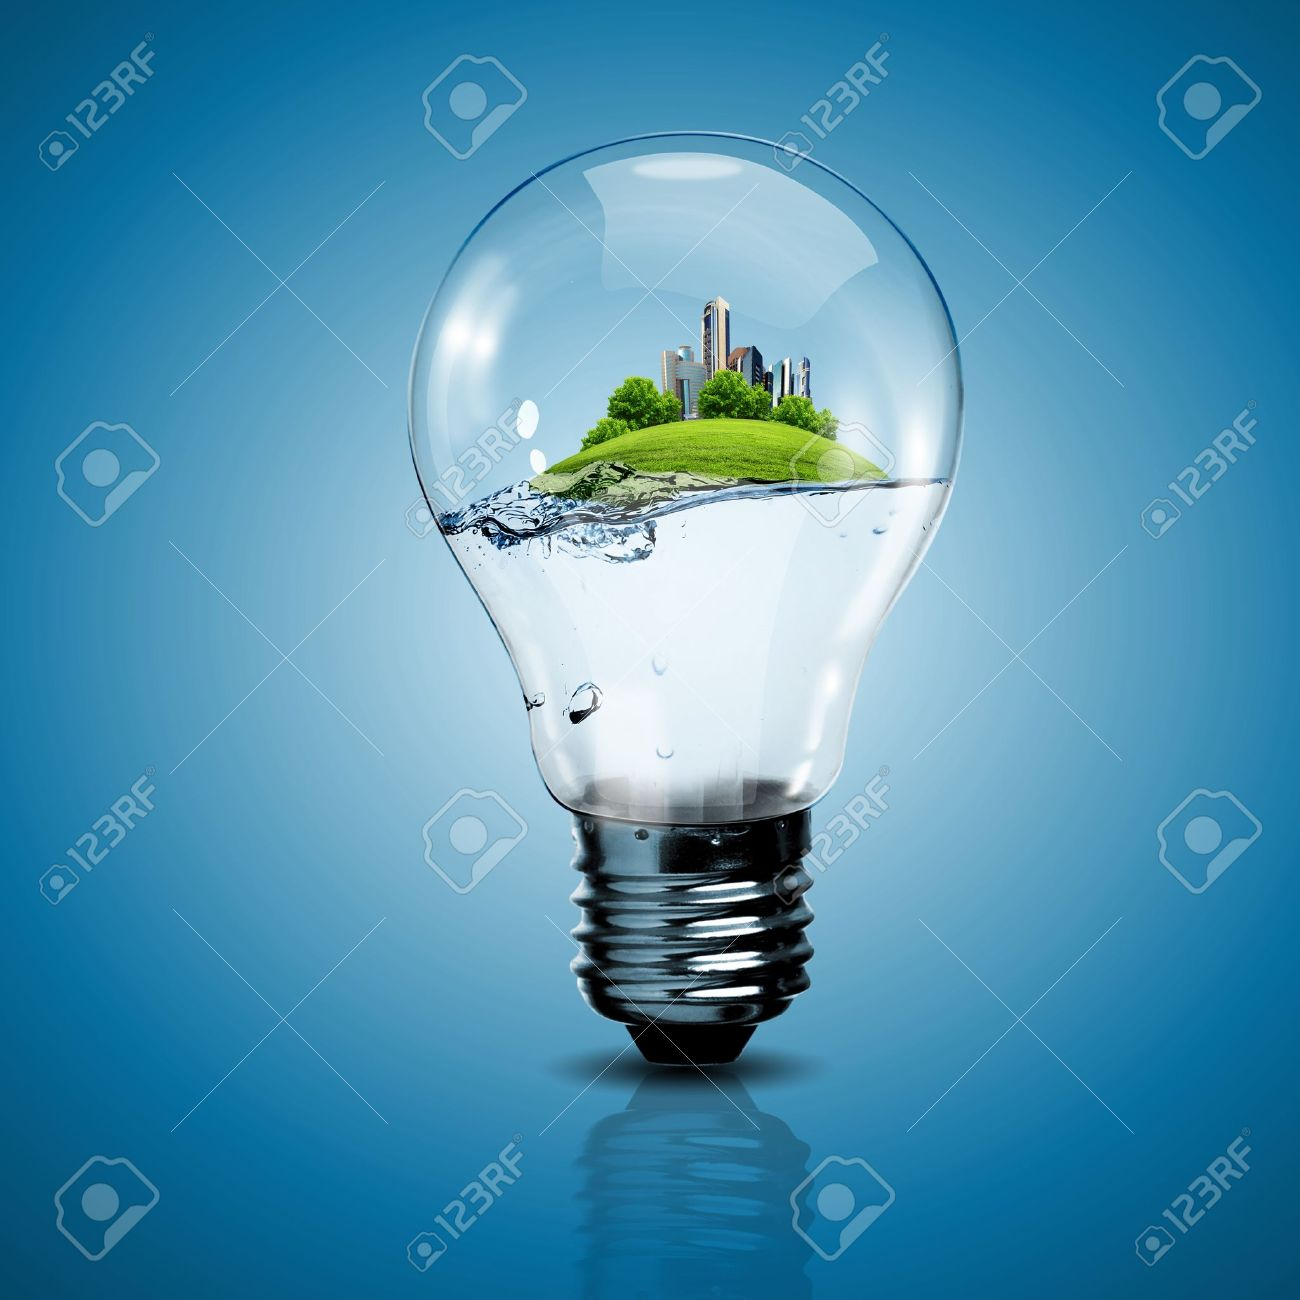 Electric light bulb and a plant inside it as symbol of green energy Stock Photo - 14909877